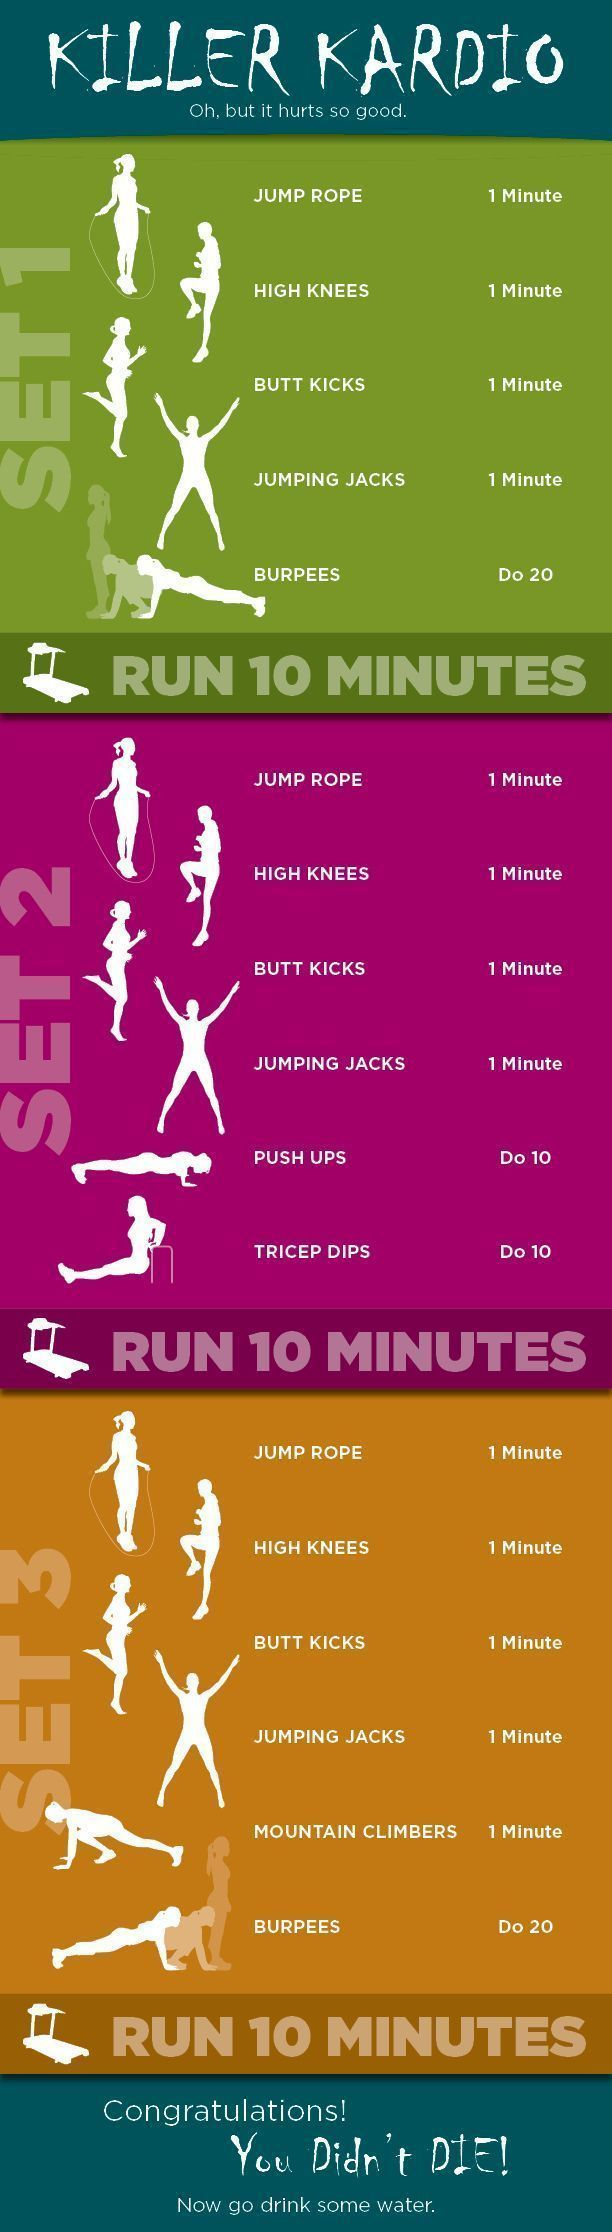 Great cardio circuit with or without the treadmill running portion! You could build up to the running level by level.